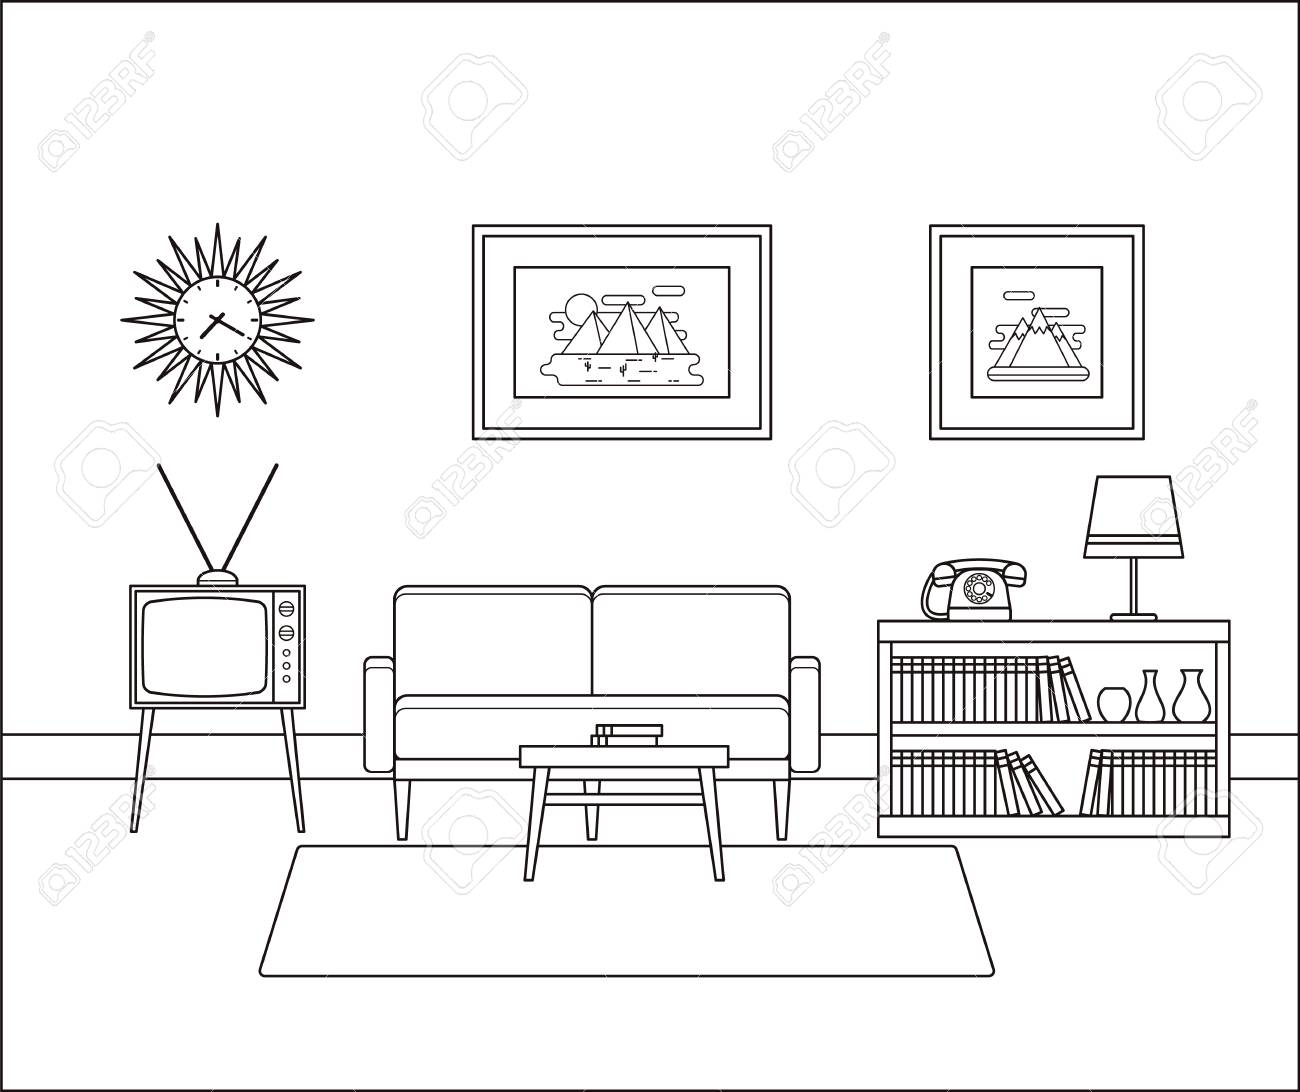 Linear Room Interior. Retro Living Room In Line Art. Vector Illustration.  Outline Sketch